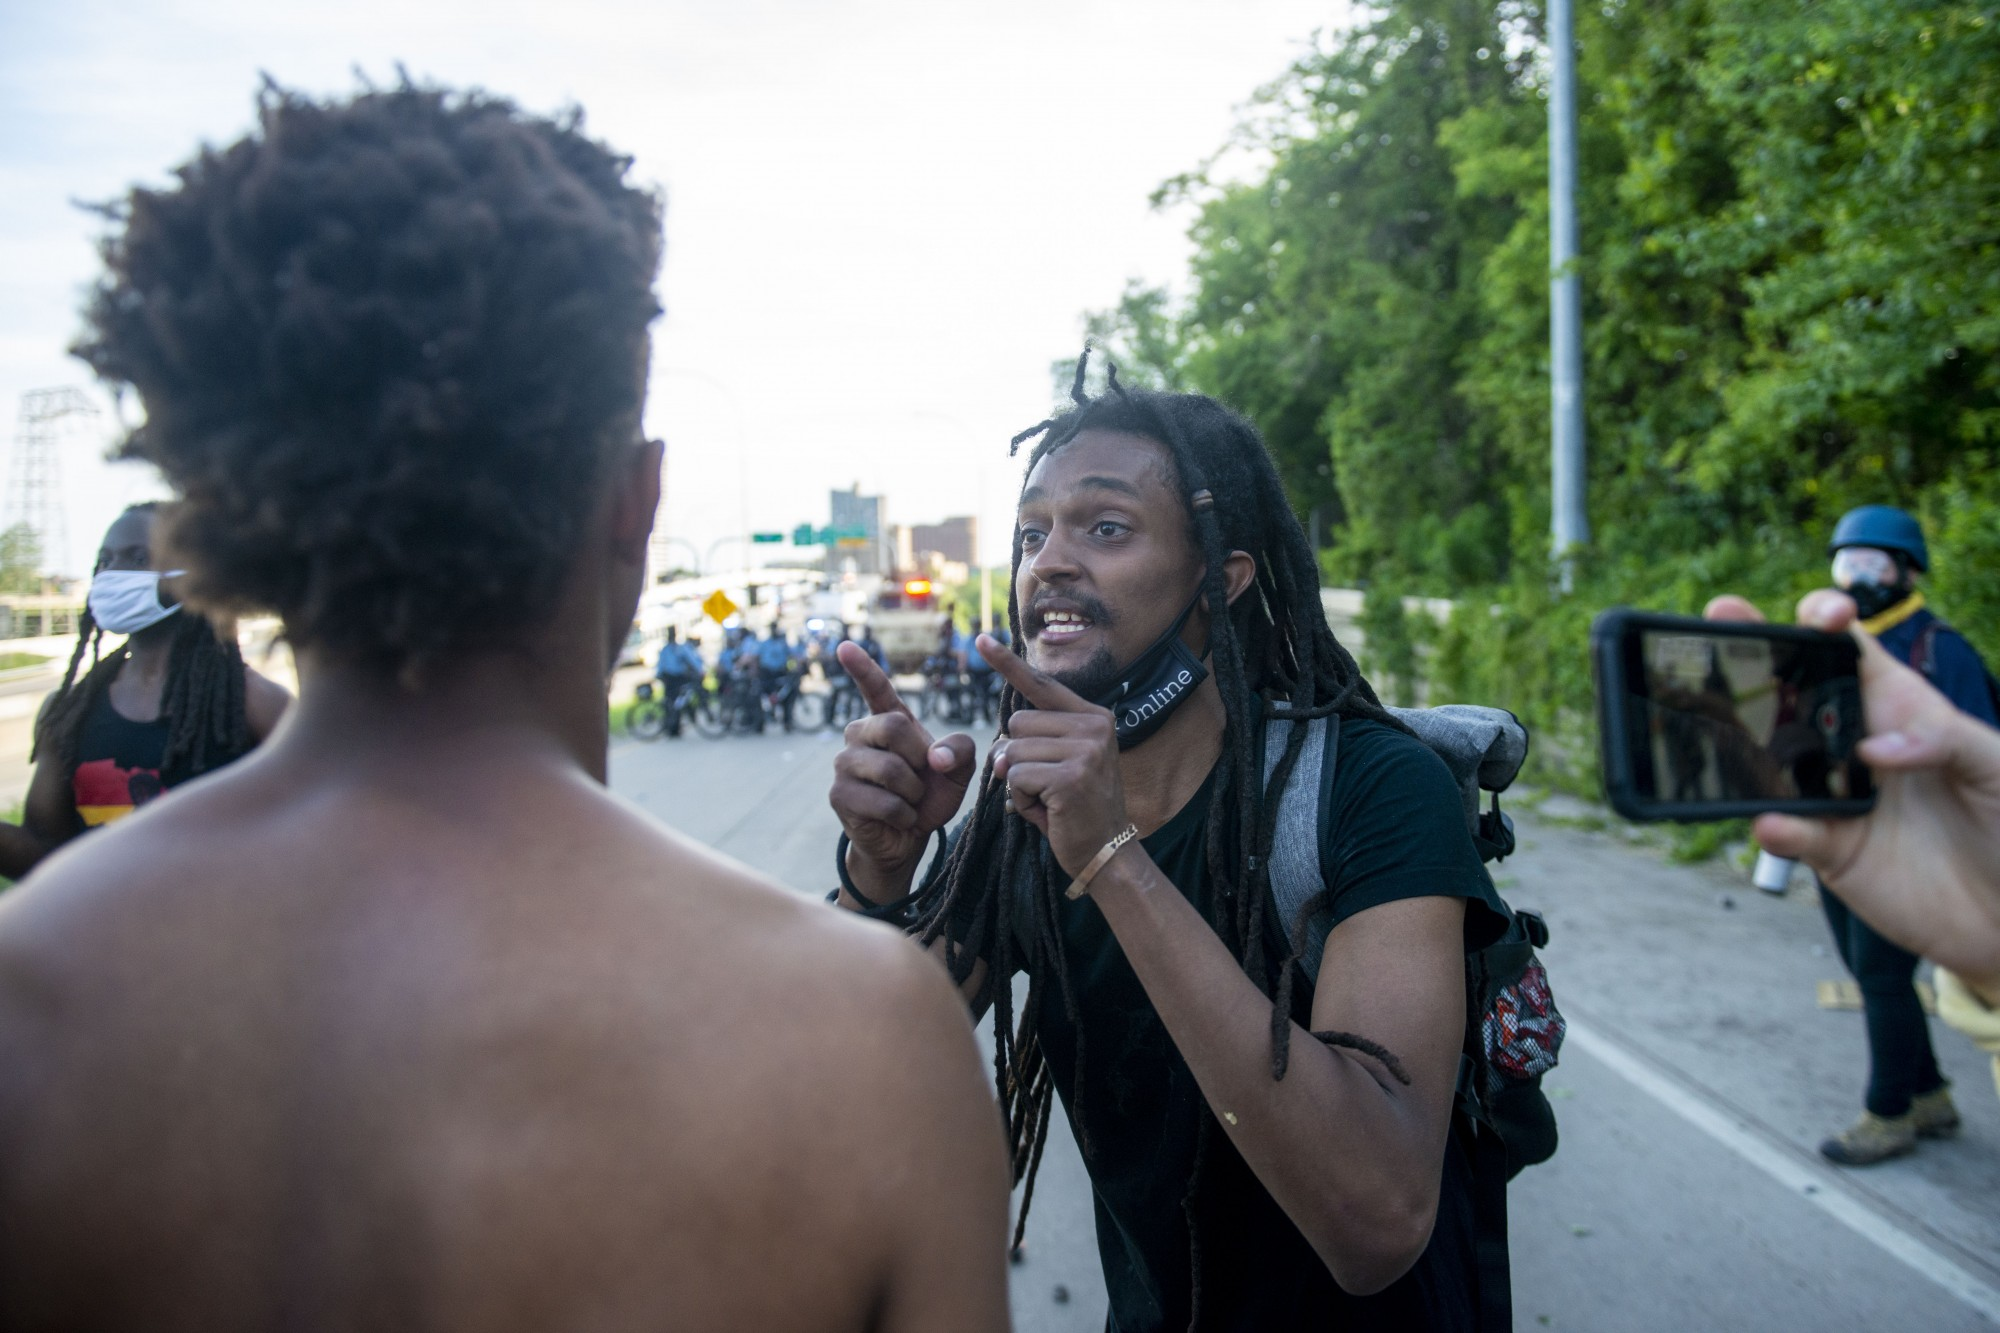 Protesters face down police at the intersection of 35W and University Avenue on Sunday, May 31.